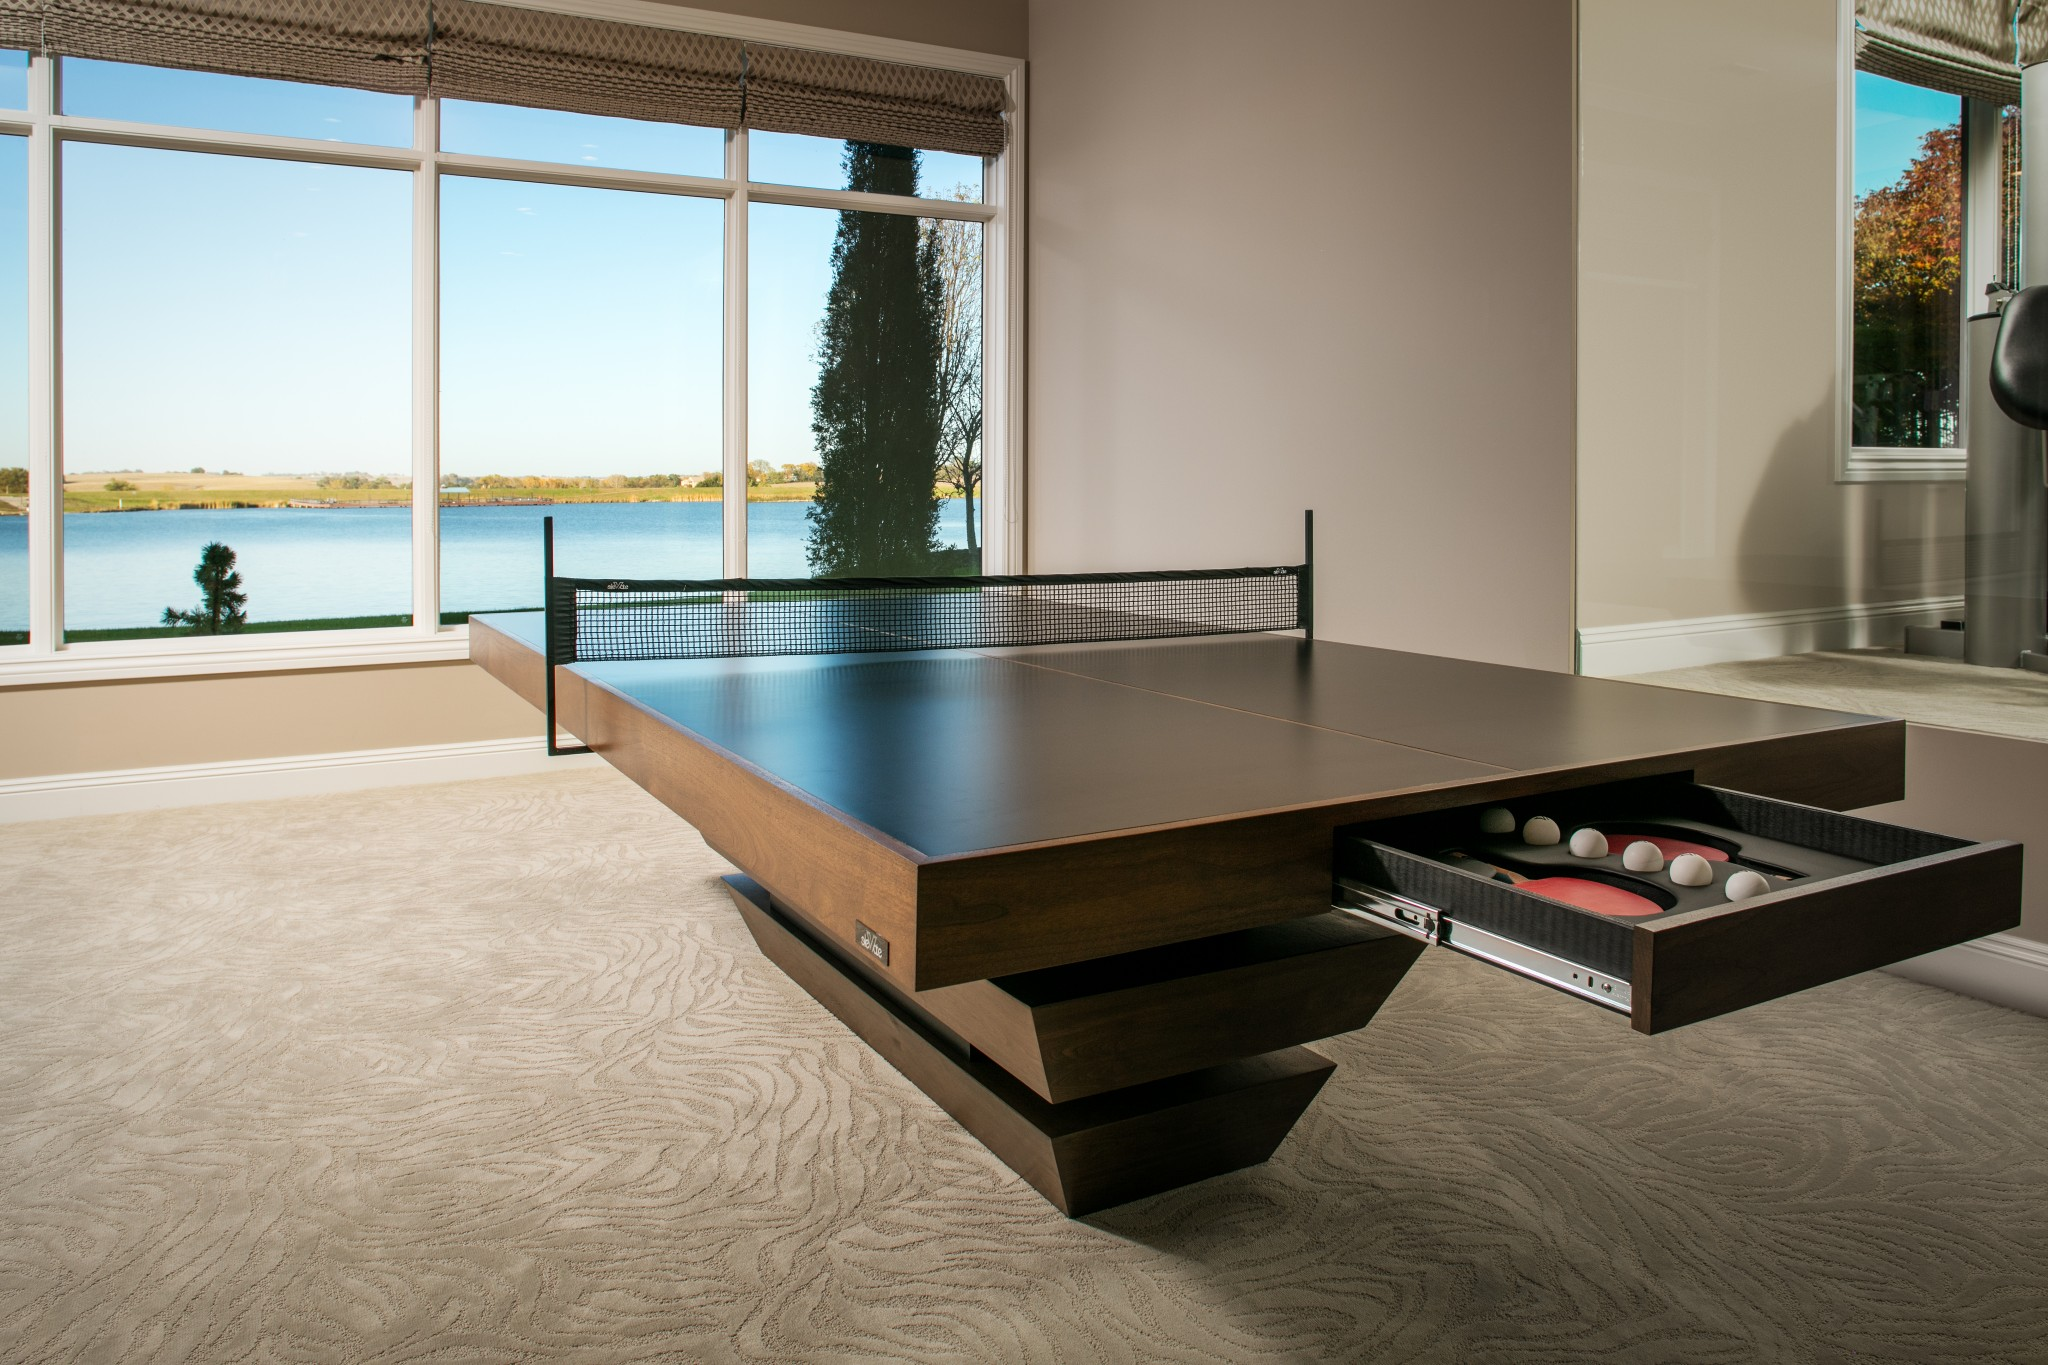 Luxury Ping Pong Table Made in Los Angeles